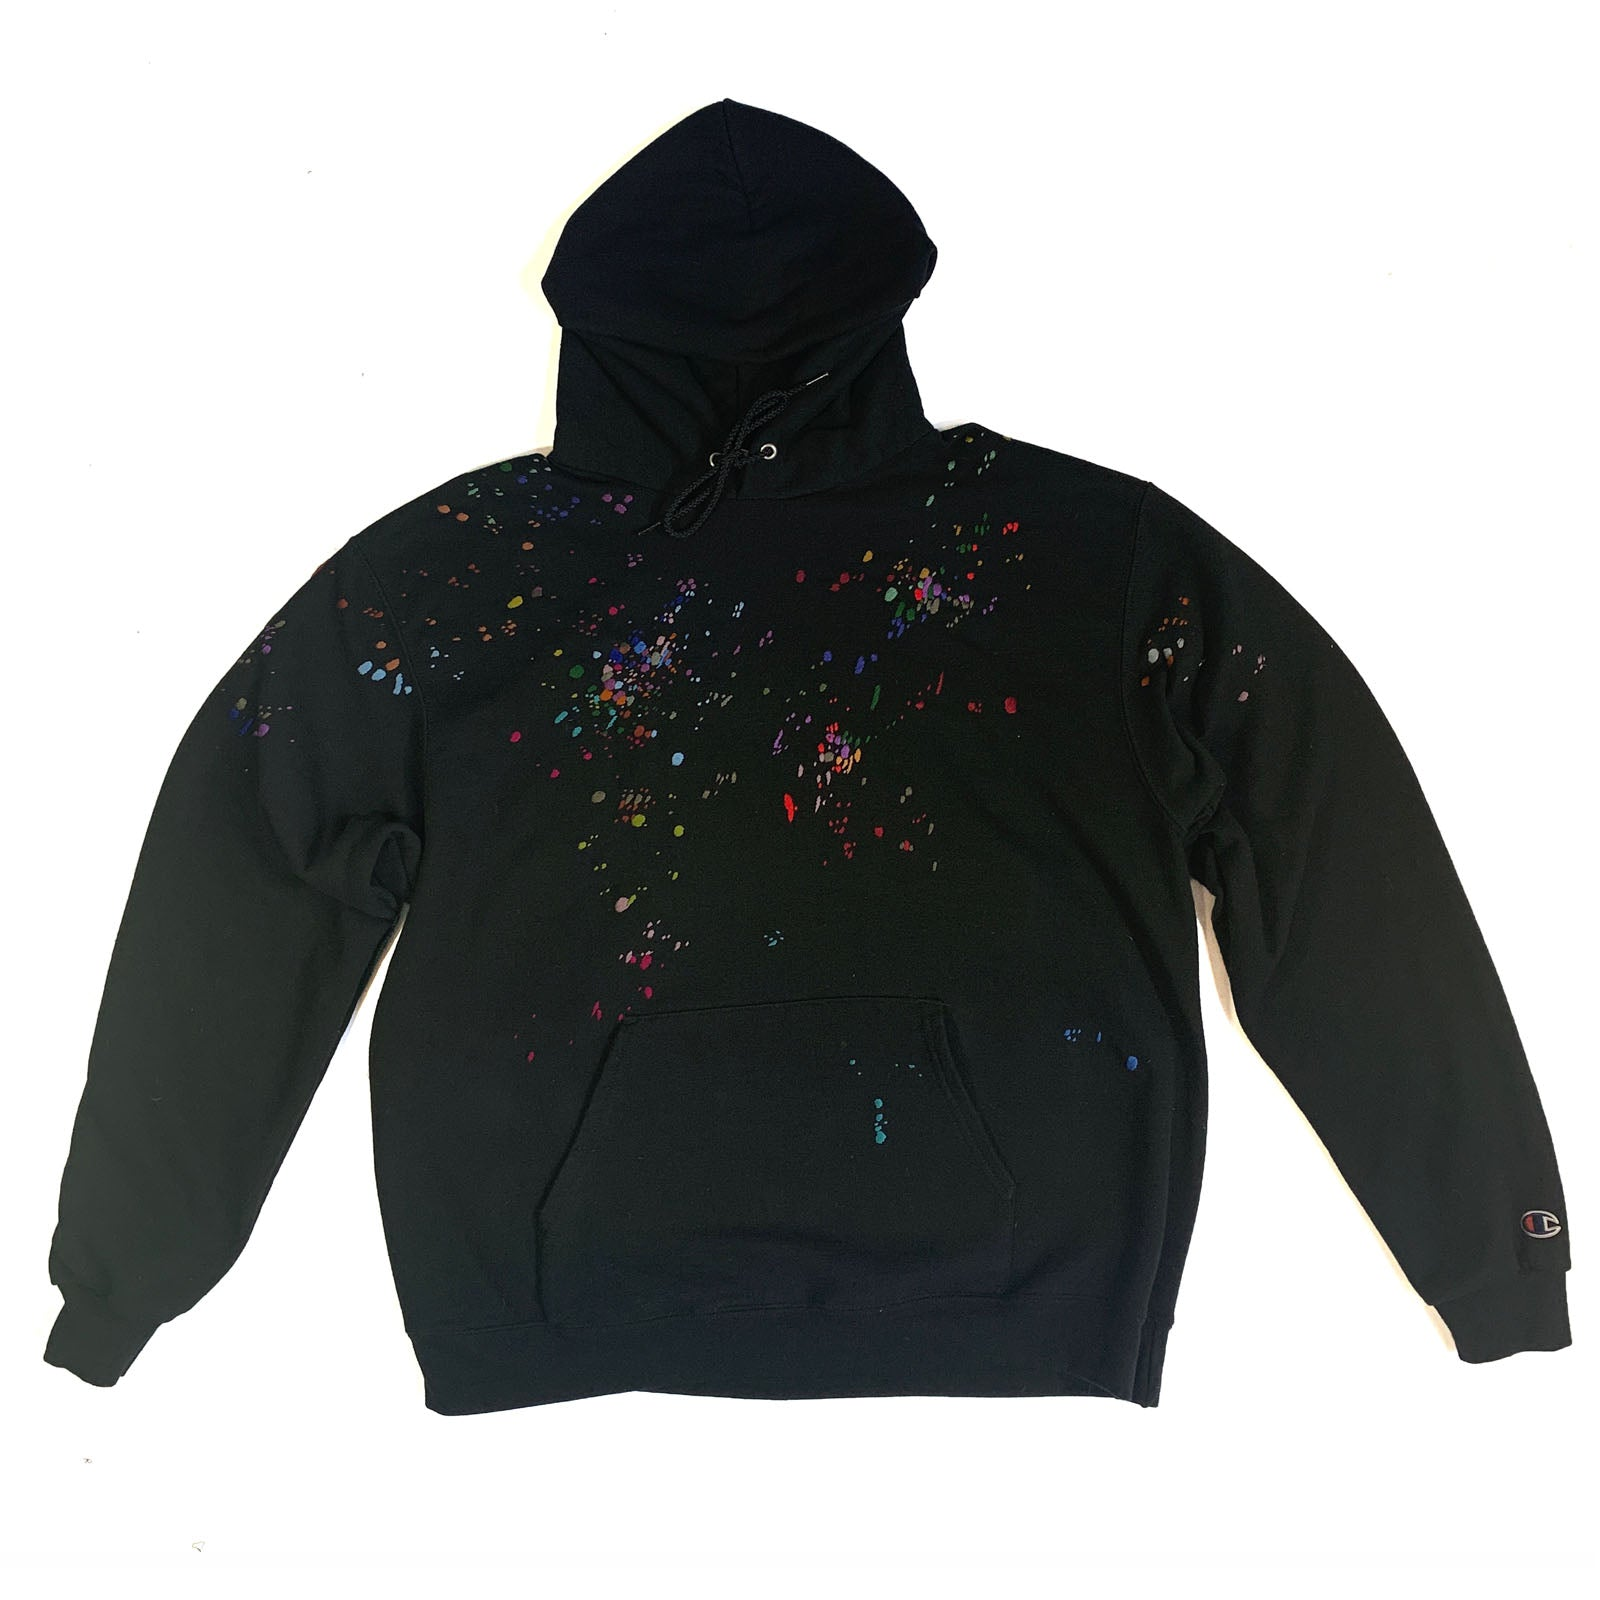 "BANDULU "" GALAXY MIND "" VINTAGE CHAMPION XL HOODIE"